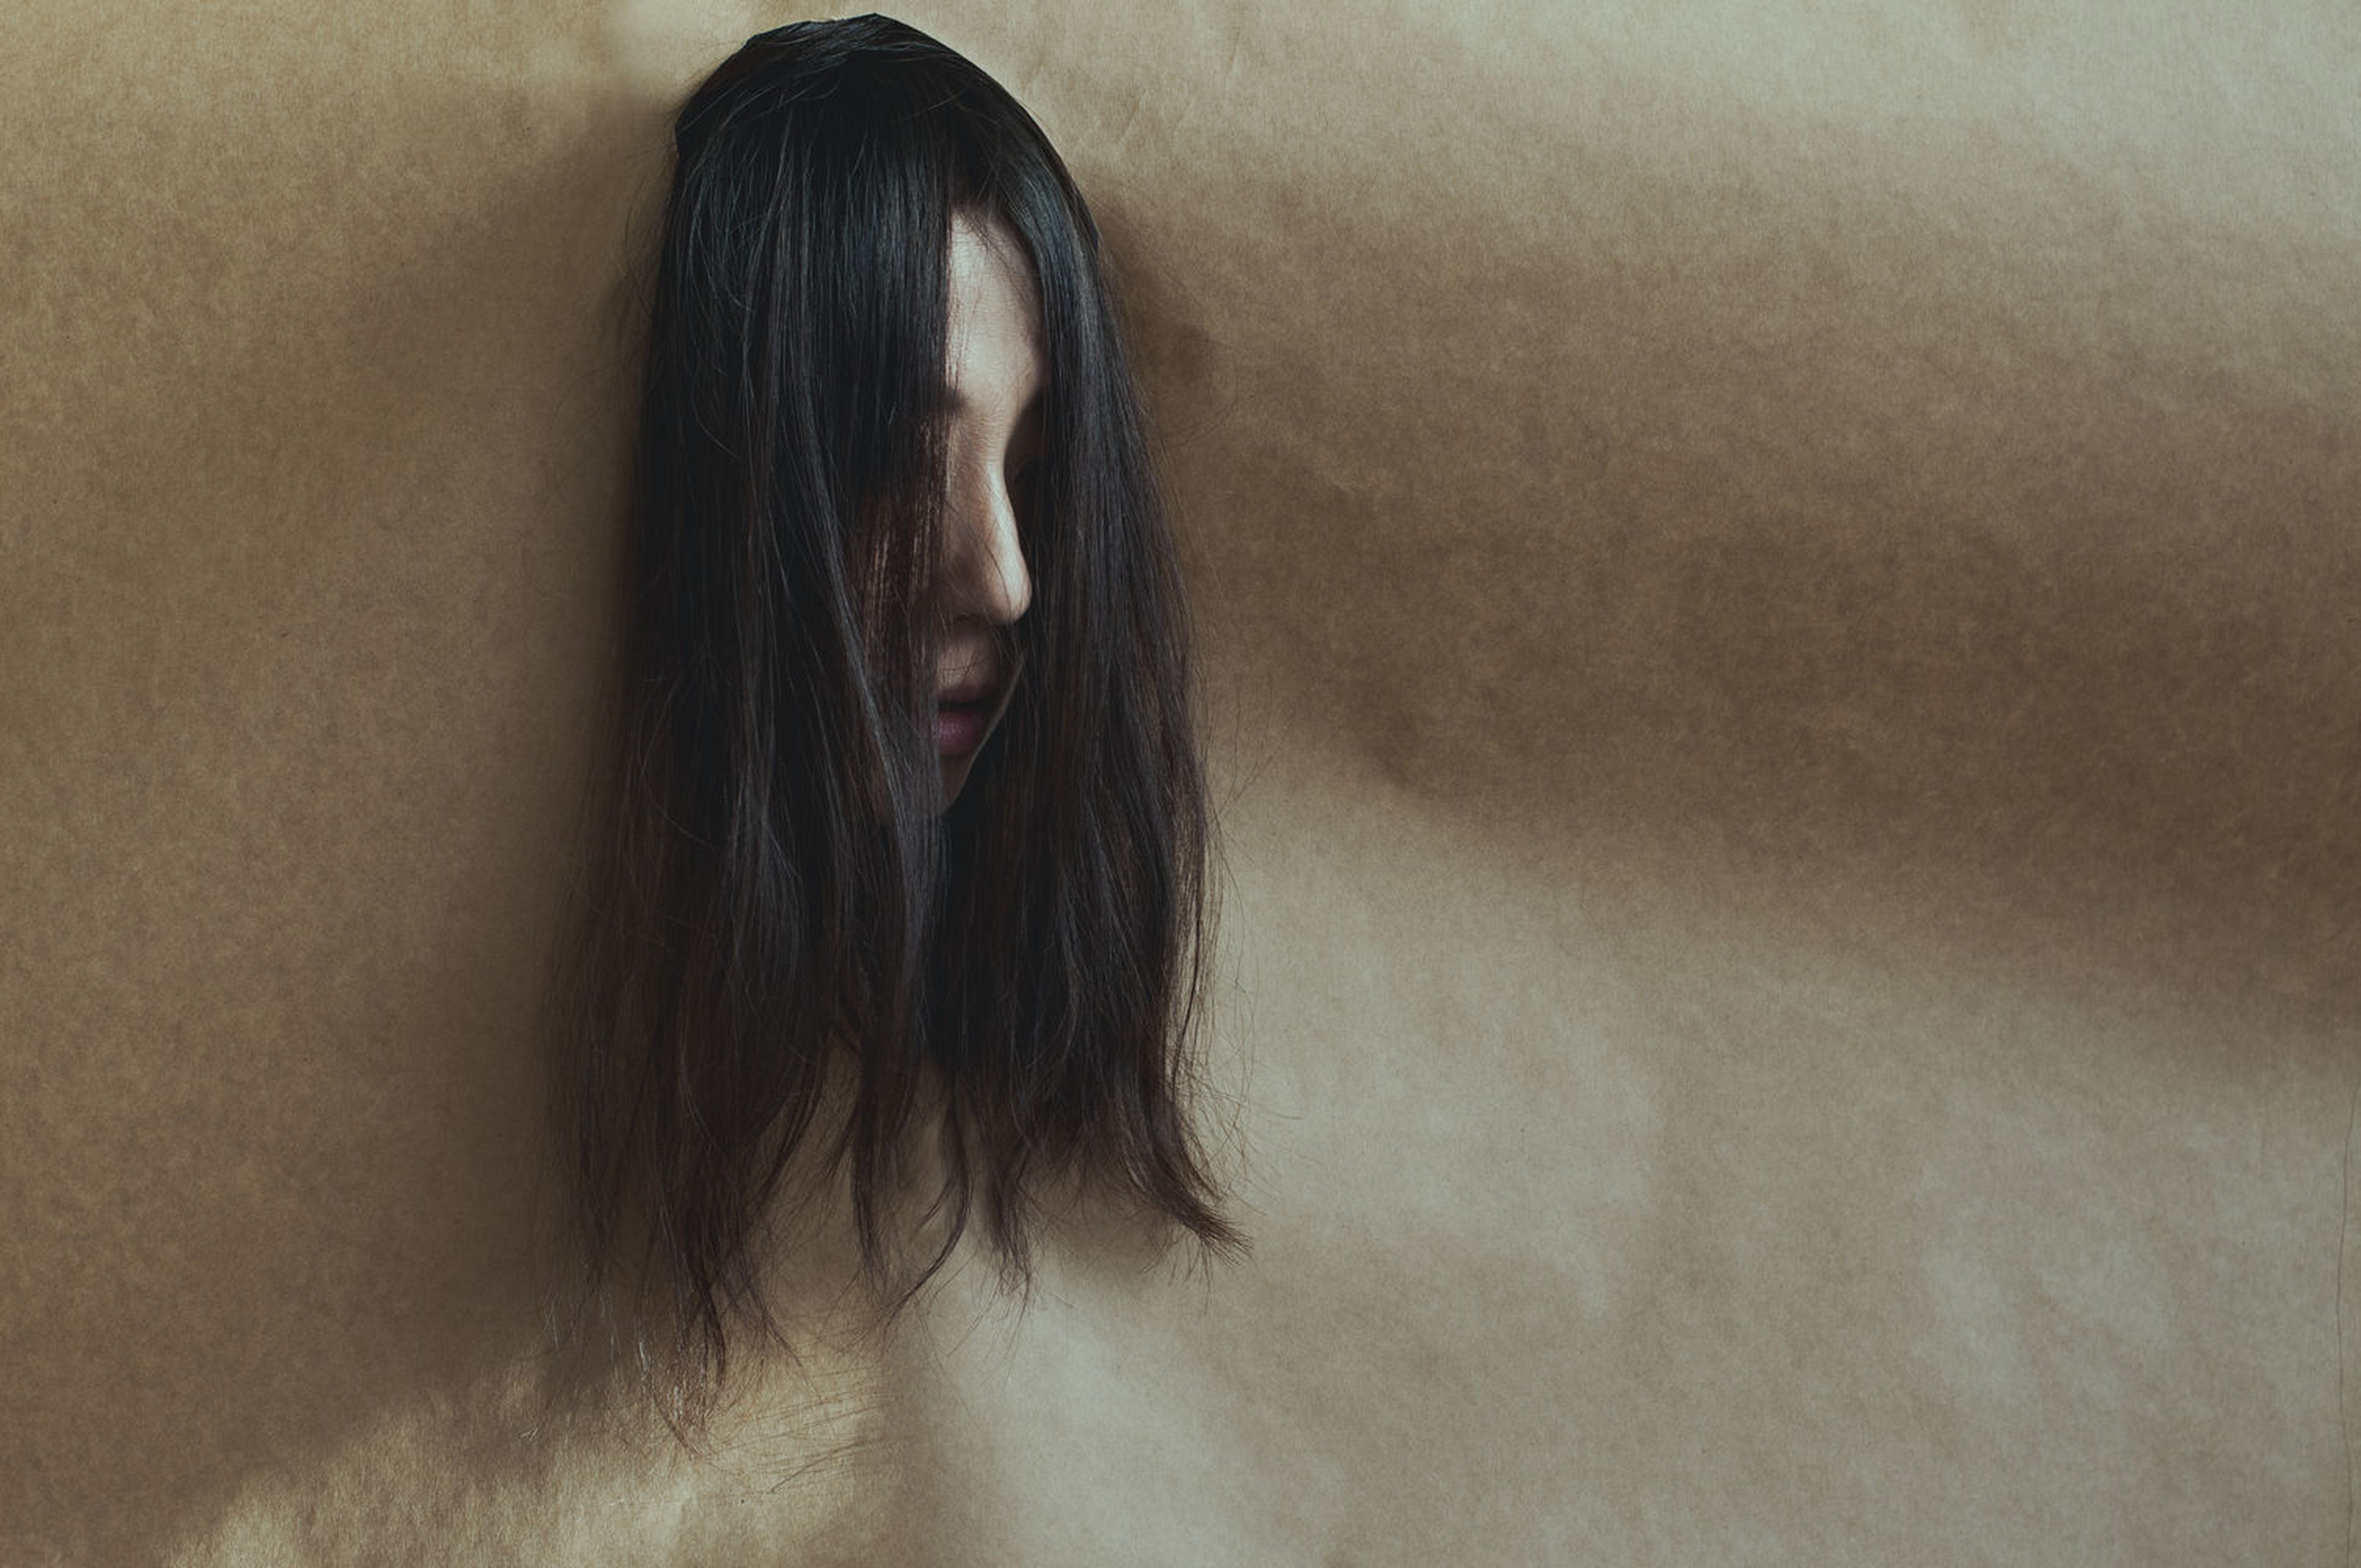 long hair, lifestyles, black hair, real people, indoors, women, one person, young women, close-up, adult, people, day